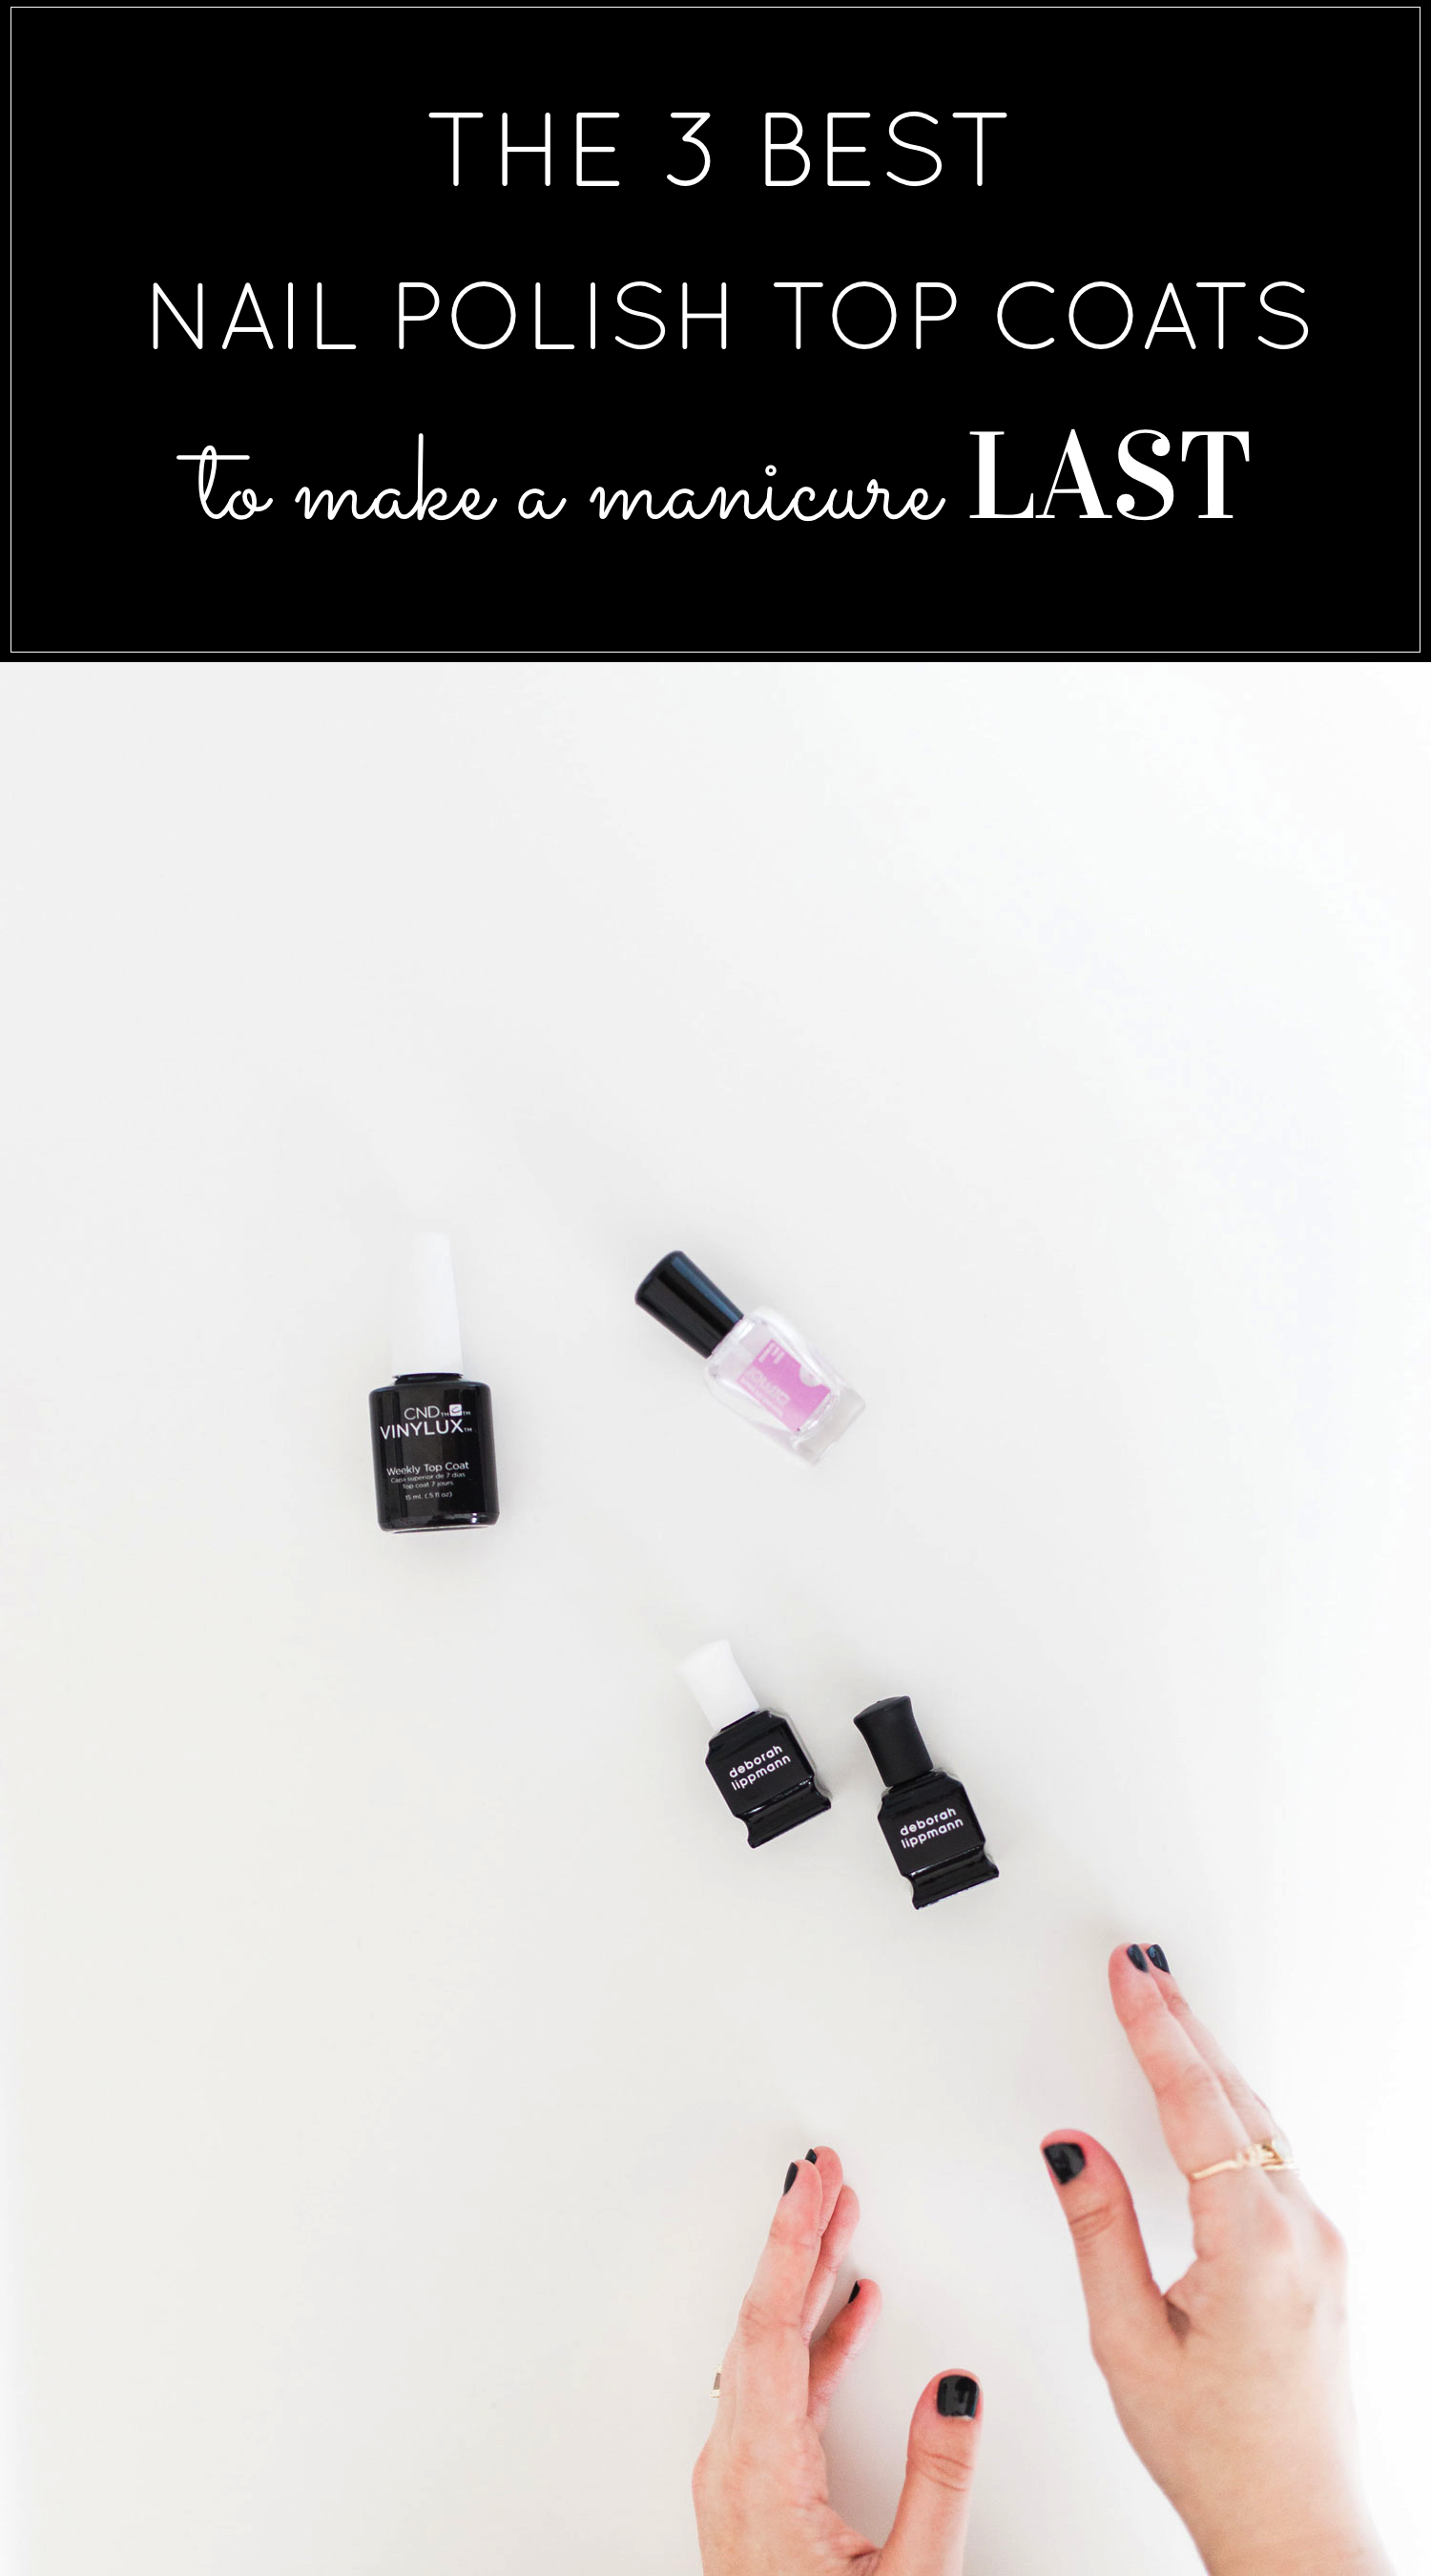 The 3 Best Nail Polish Top Coats to Make Your Manicure LAST. Click through for the details. | glitterinc.com | @glitterinc